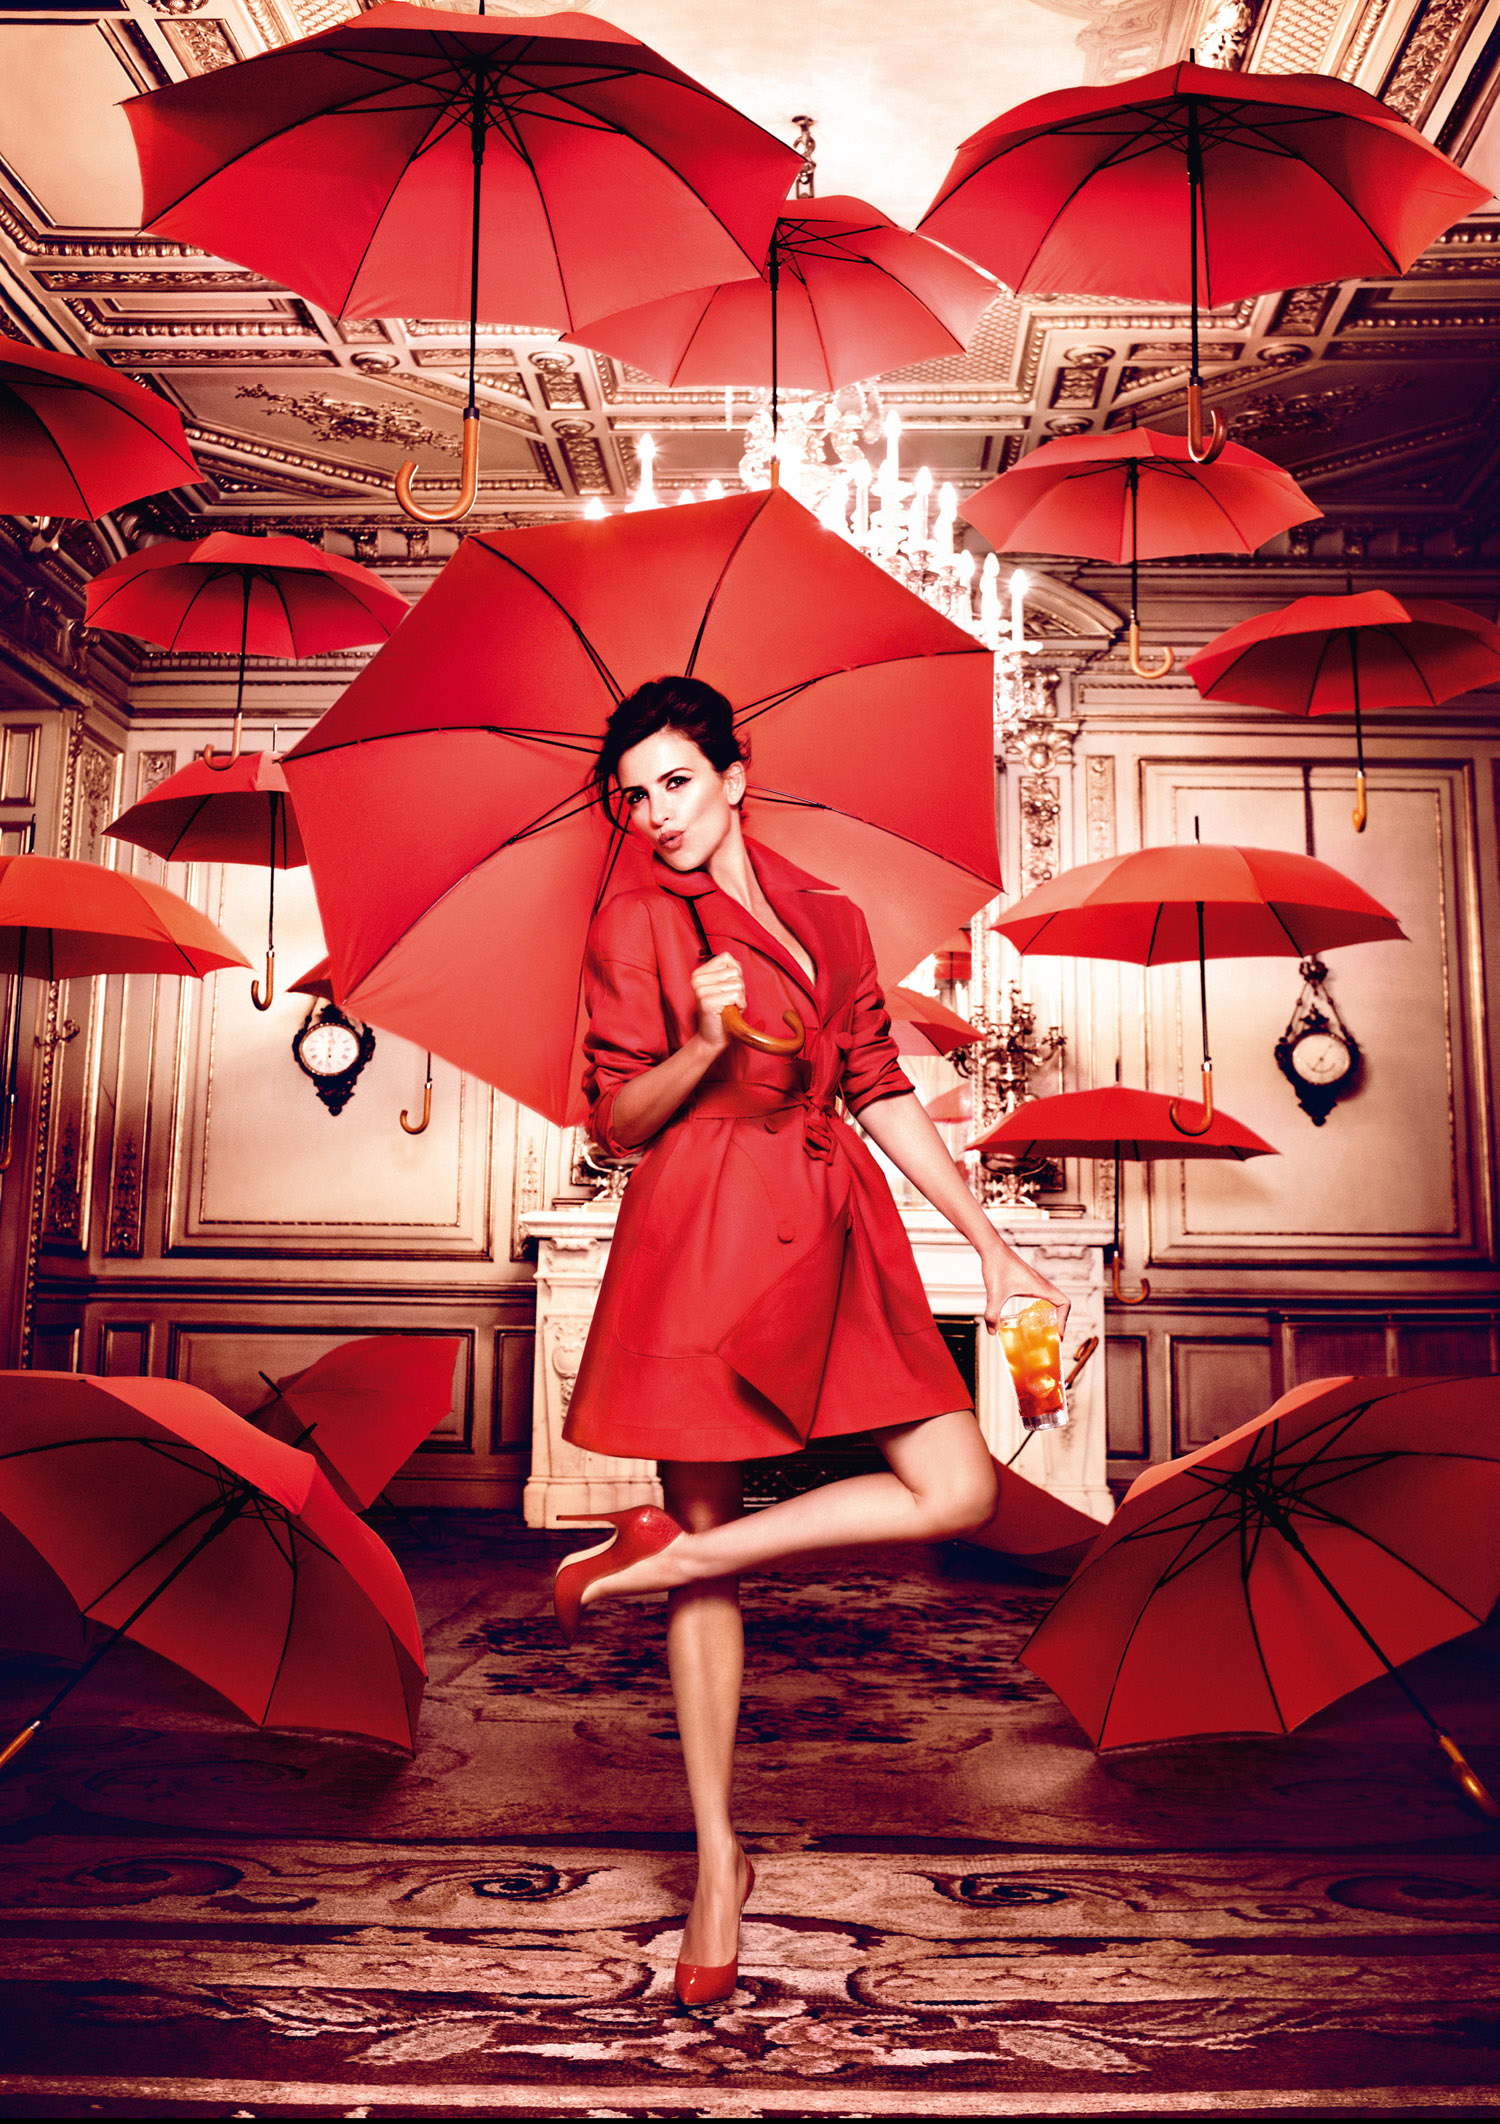 marzo calendario Campari: Penelope Cruz